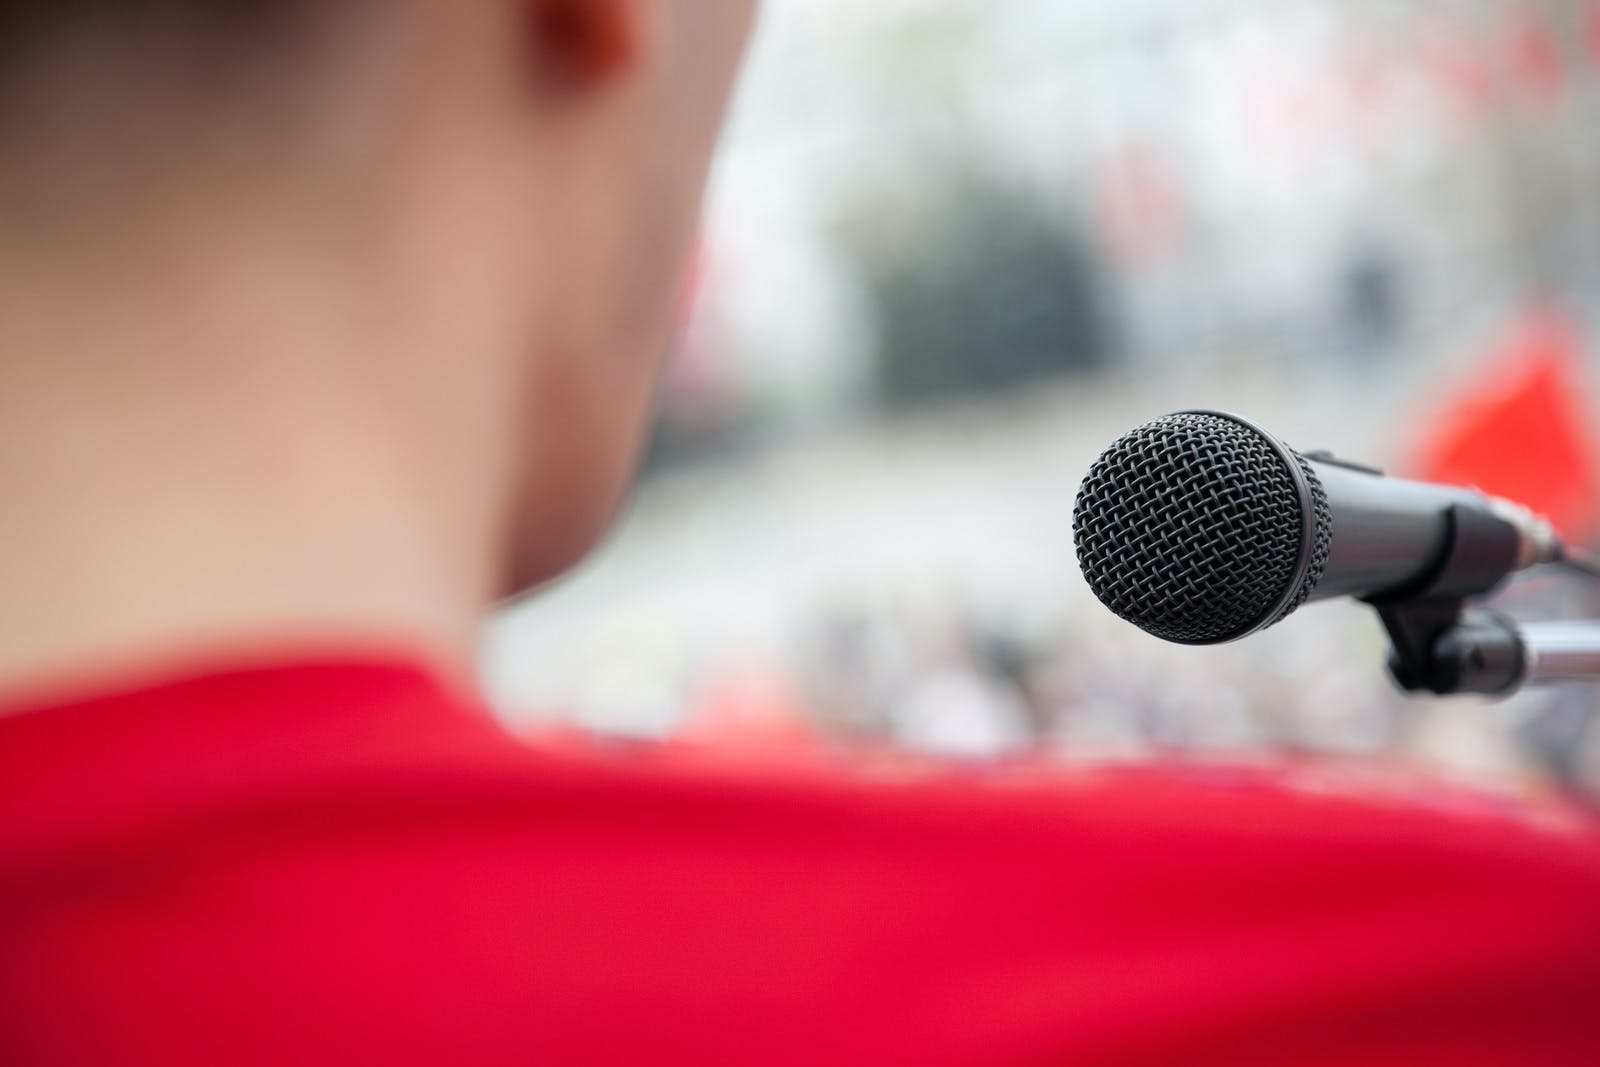 microphone and shoulder of man with fear of public speaking